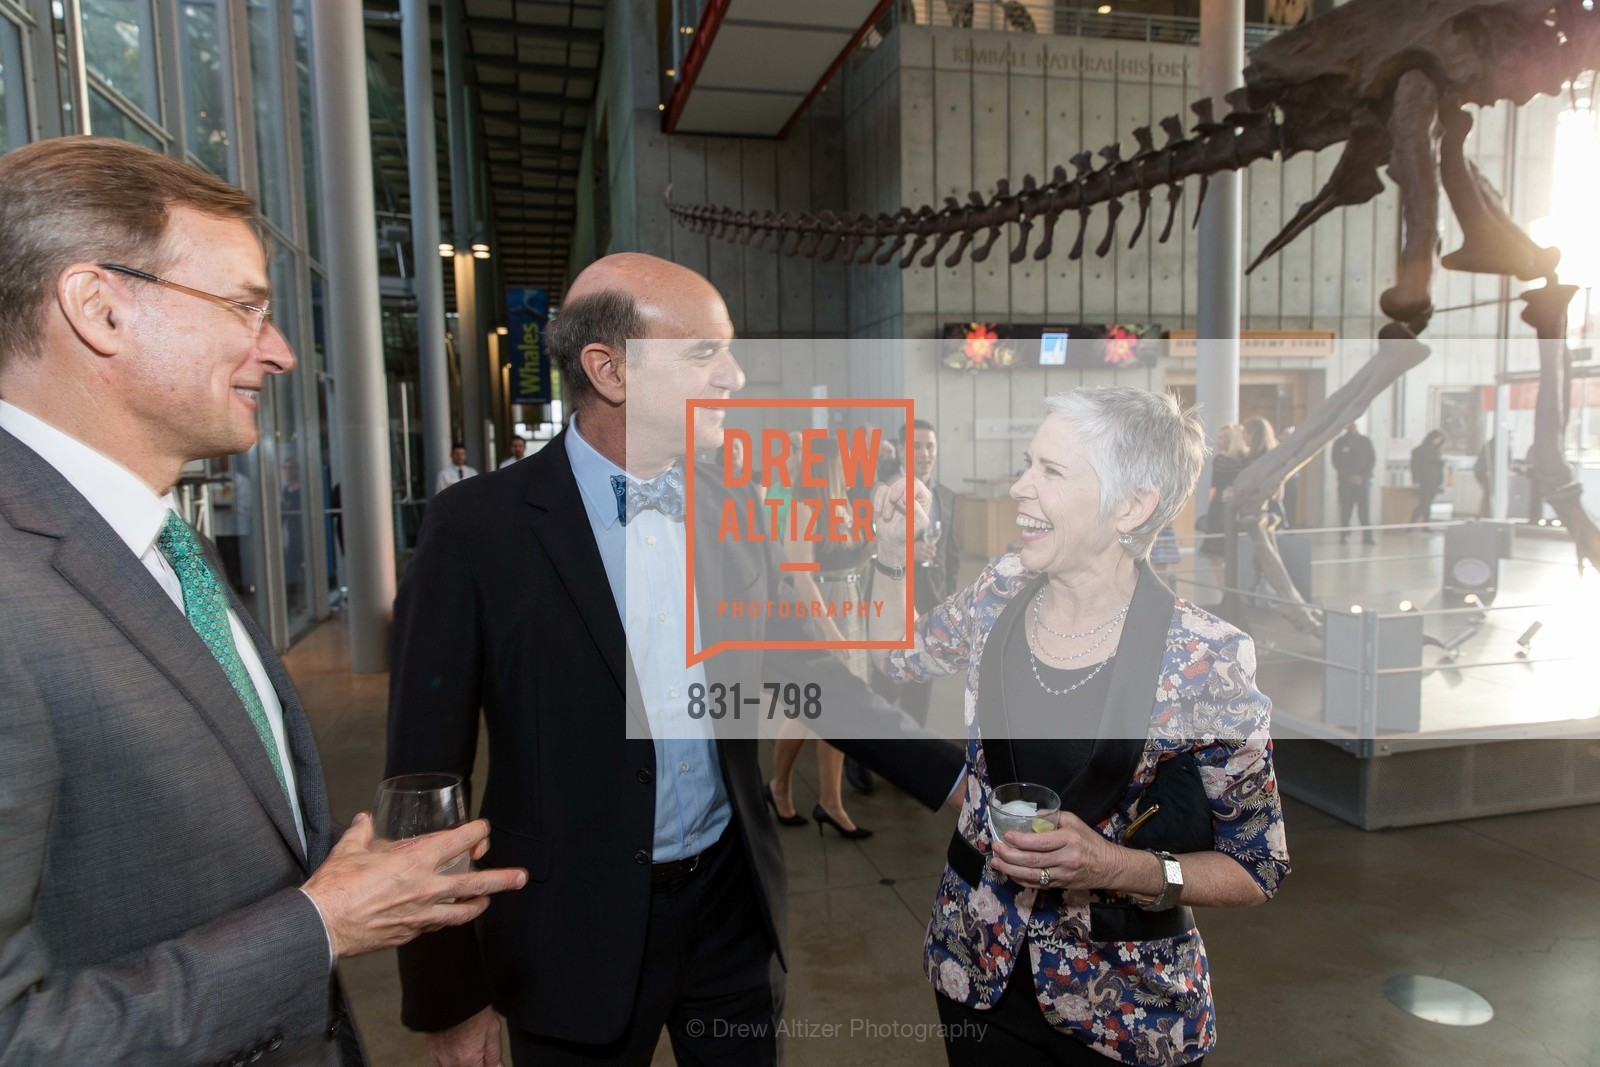 John Atwater, Bob Fisher, Laura Lazarus, CALIFORNIA ACADEMY OF SCIENCES - Big Bang Gala 2015, US, April 24th, 2015,Drew Altizer, Drew Altizer Photography, full-service agency, private events, San Francisco photographer, photographer california